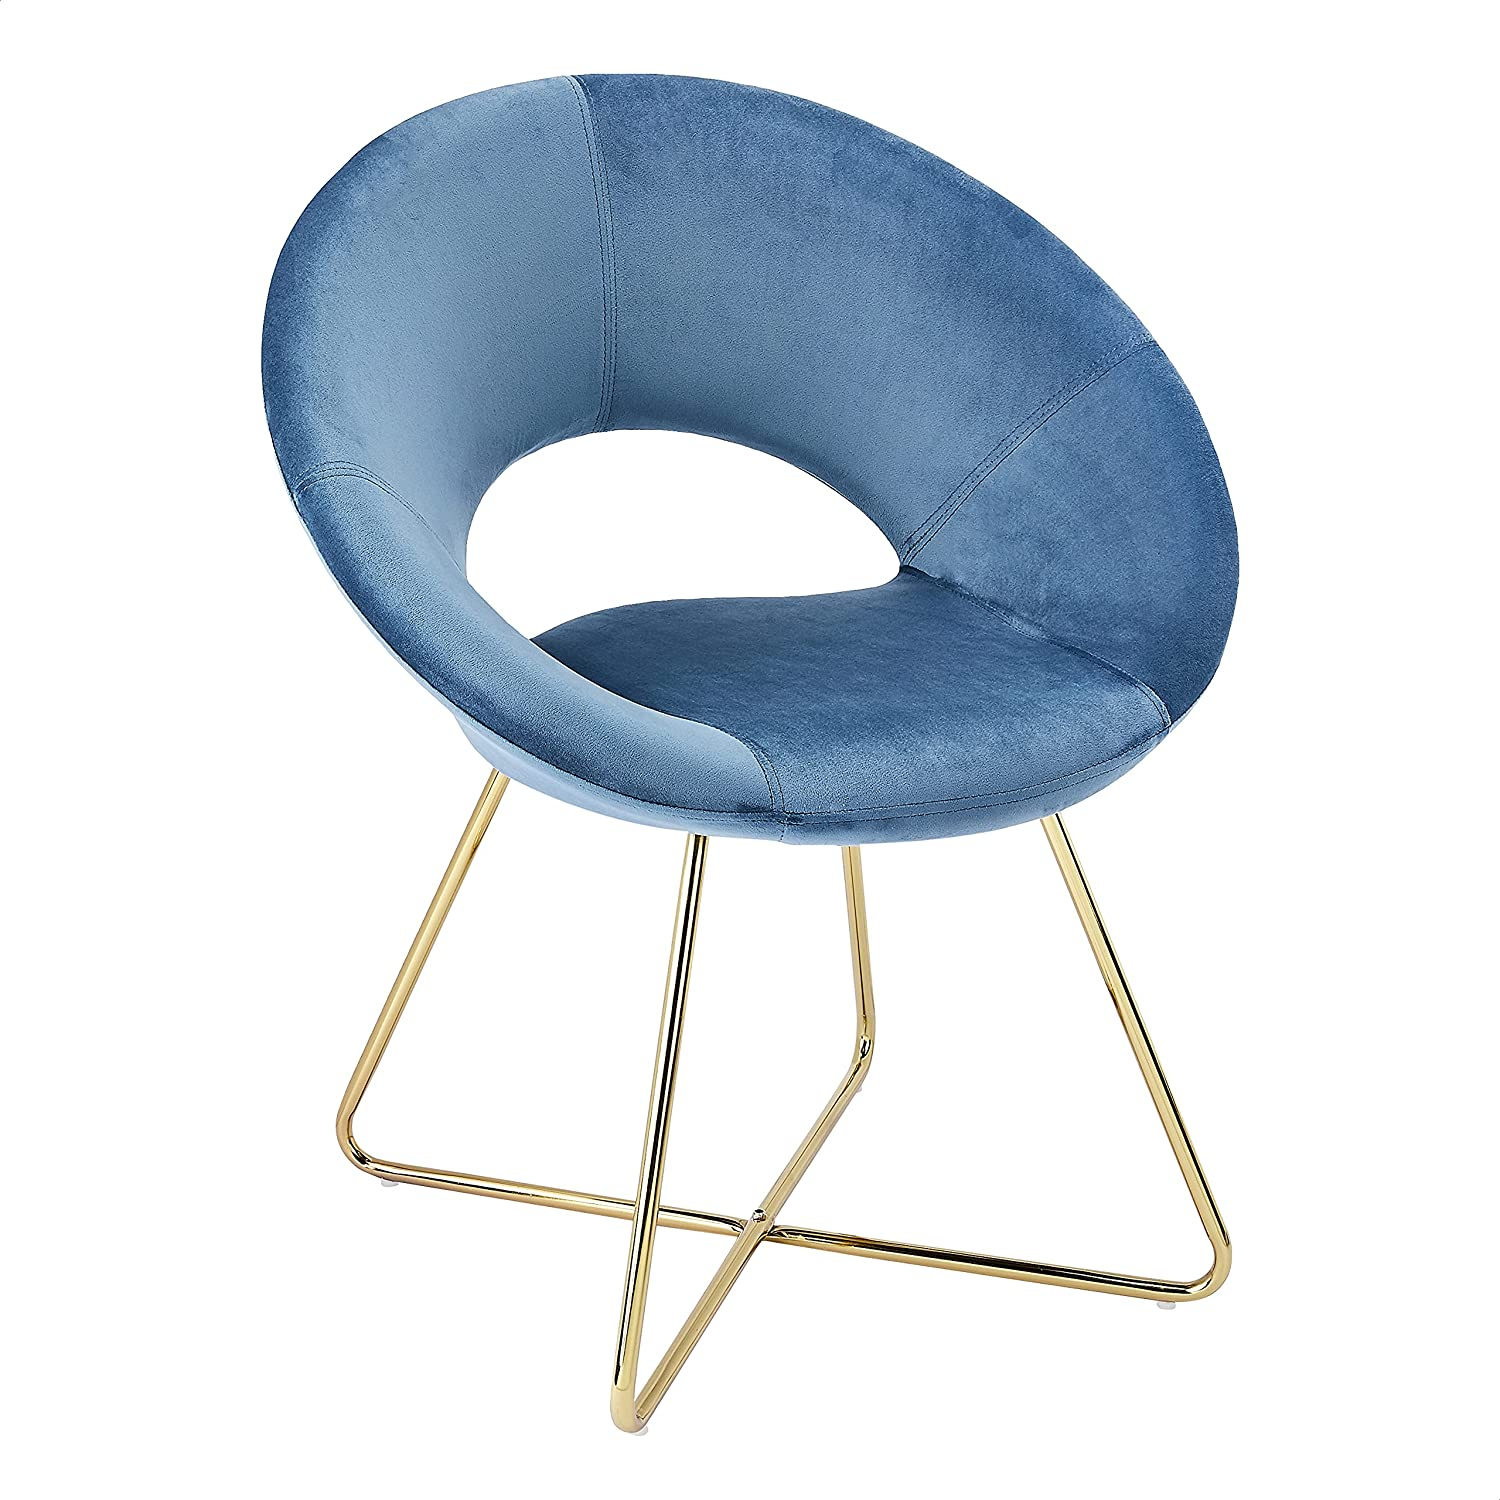 CangLong Modern Velvet Accent Chairs Upholstered Chairs Make-up Stool Home Office Guest Reception Chairs Dining Chair Leisure Lounge Chairs with Golden Legs Set of 1,Blue (KU-191336)